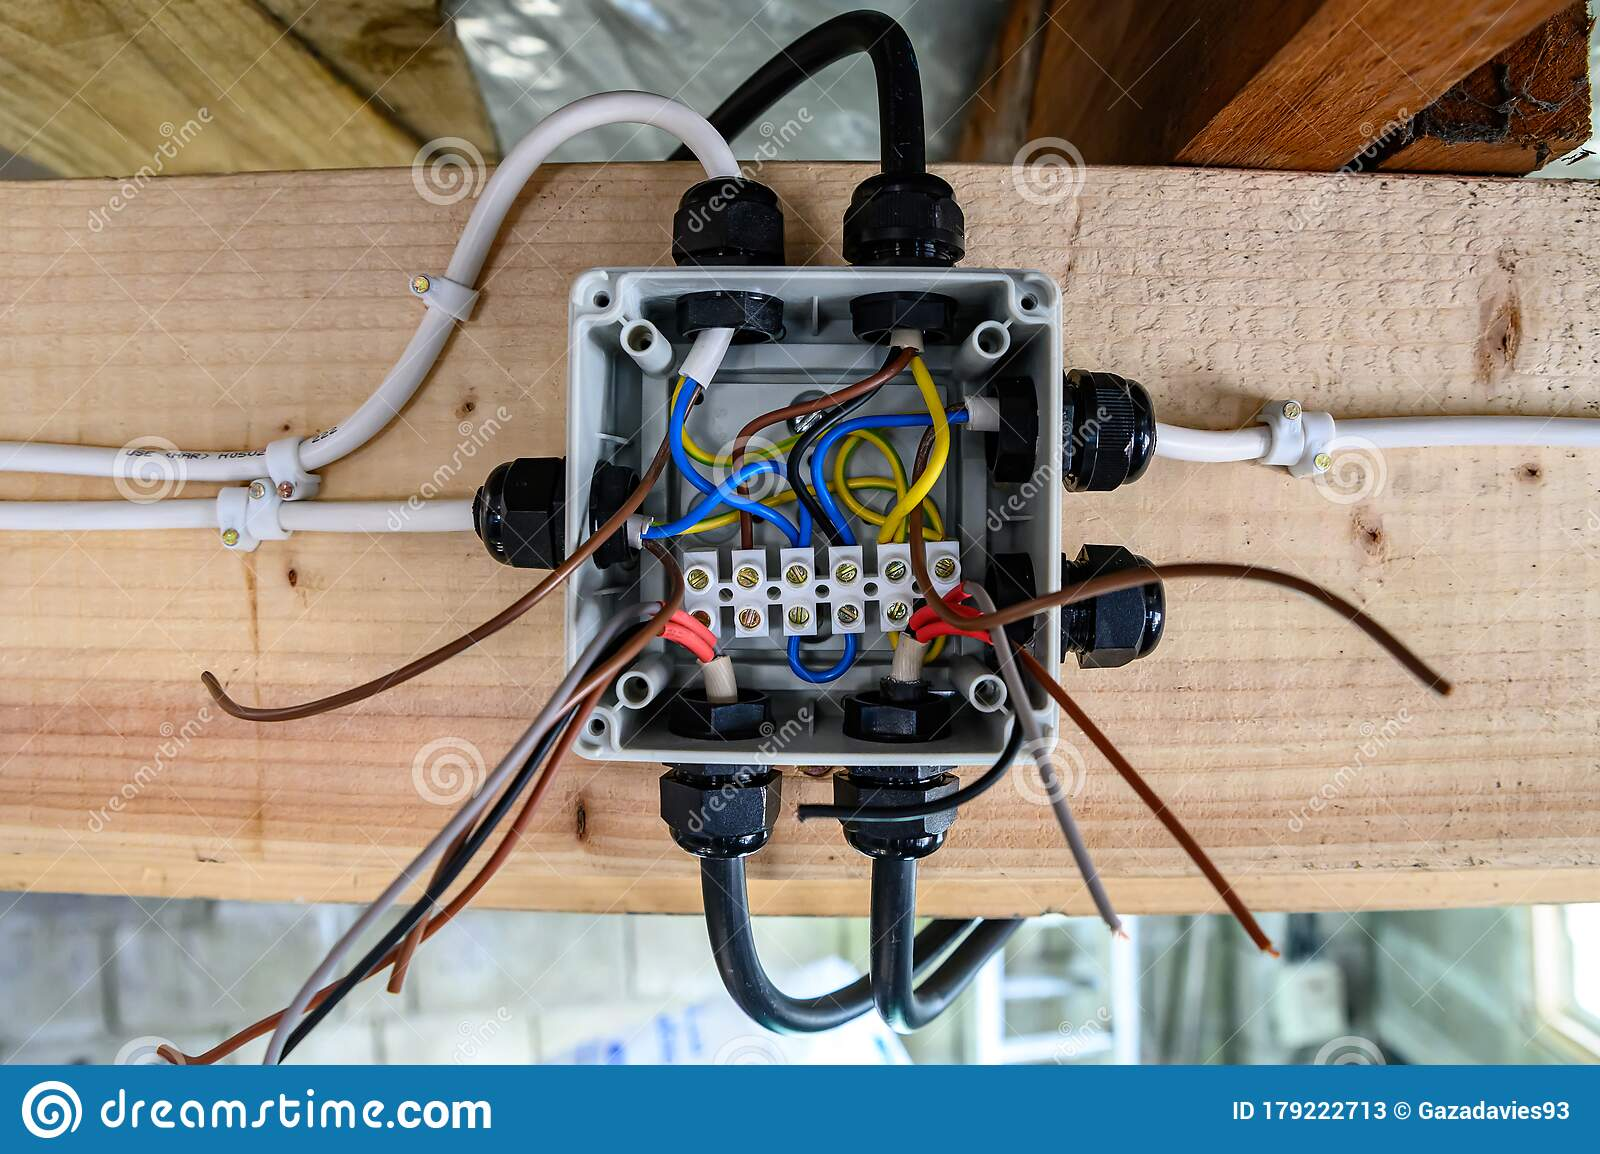 Exposed Wiring Junction Box Half Complete Ready For Operation In Home Garage Stock Image Image Of Jeopardy Background 179222713